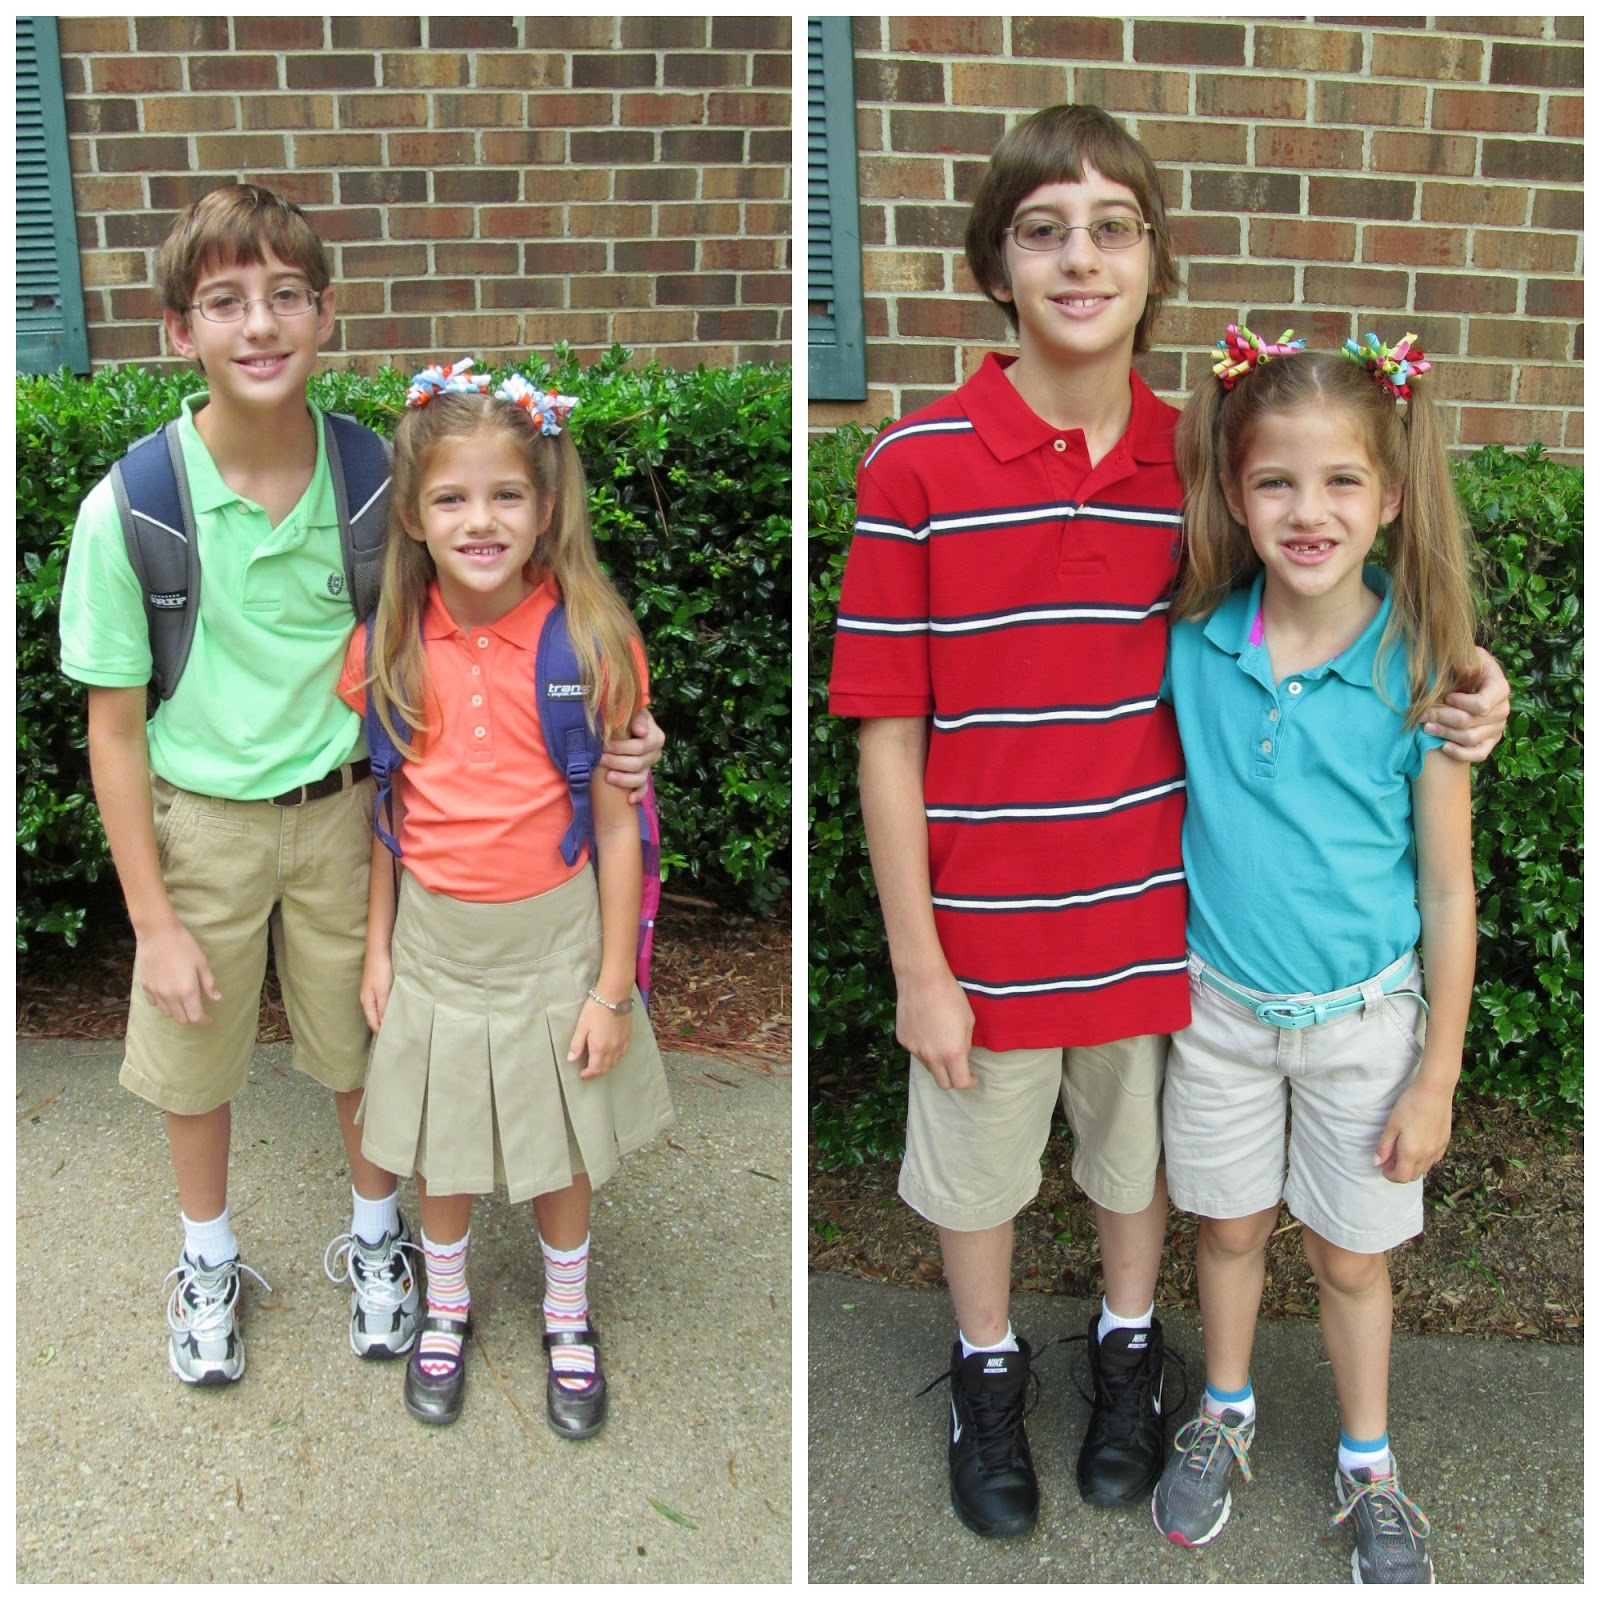 9th grader dating 6th grader - BabyGaga